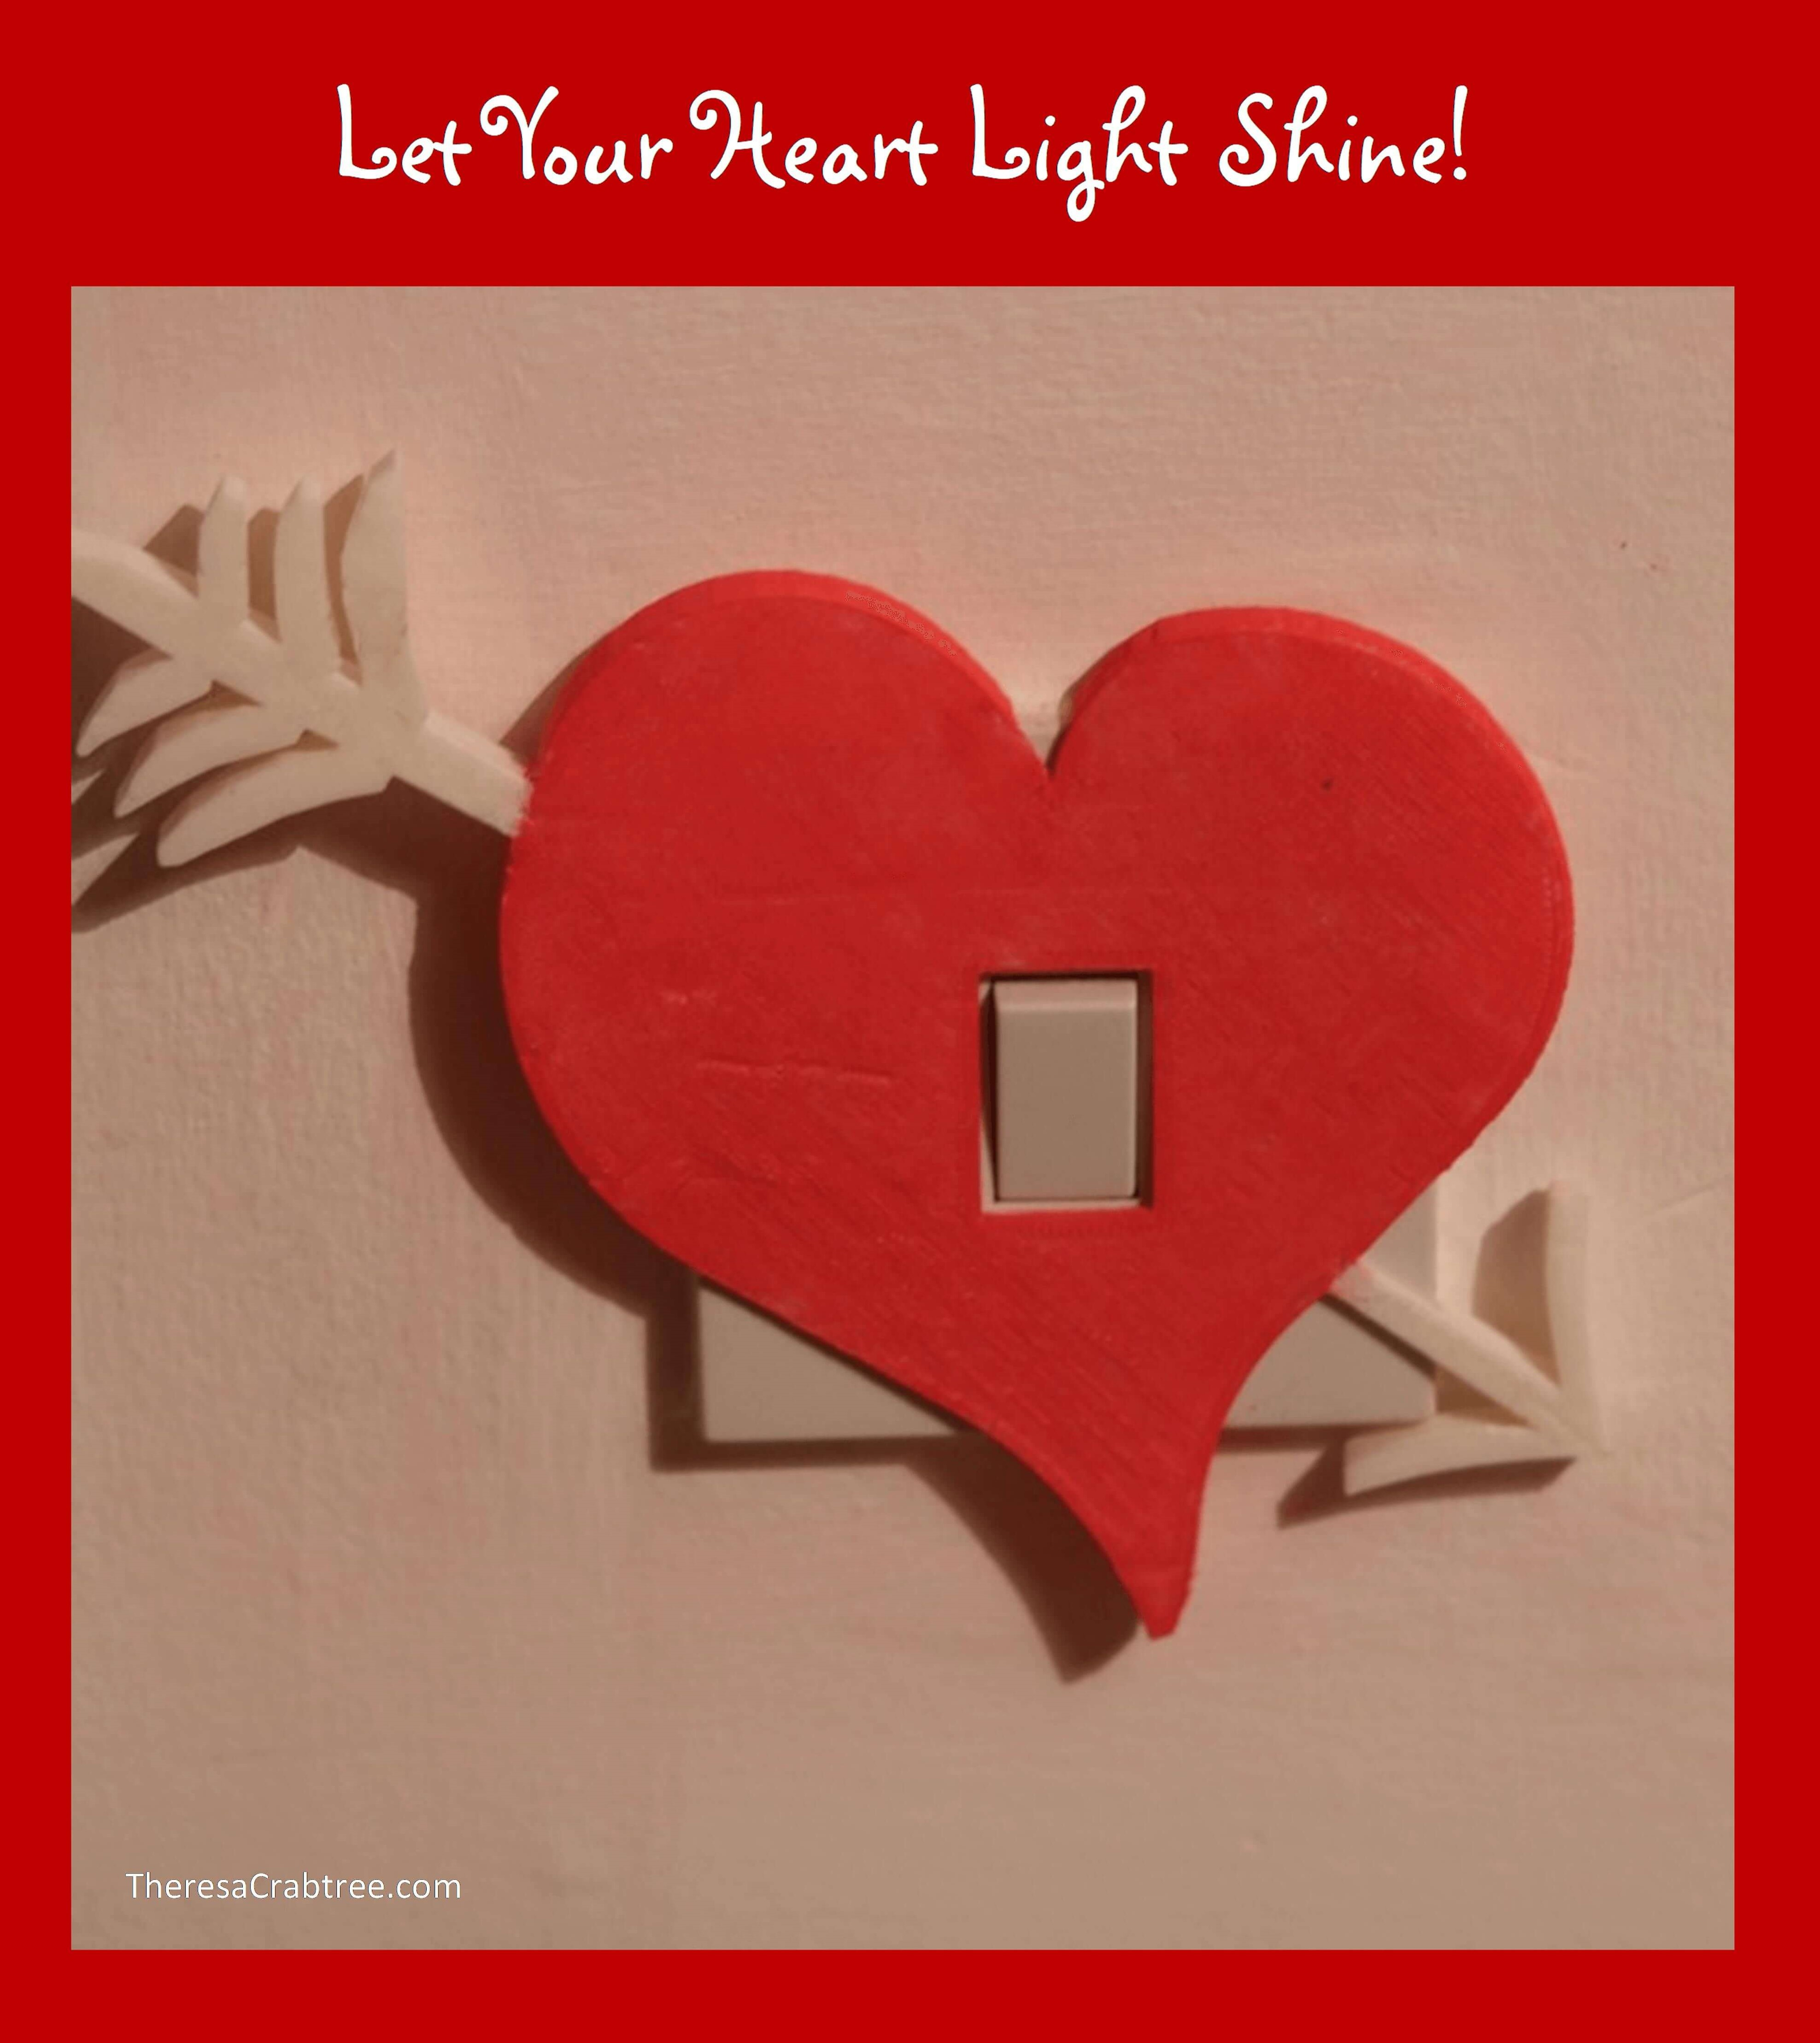 Soul Connection 249 ~ Let Your Heart Light Shine!